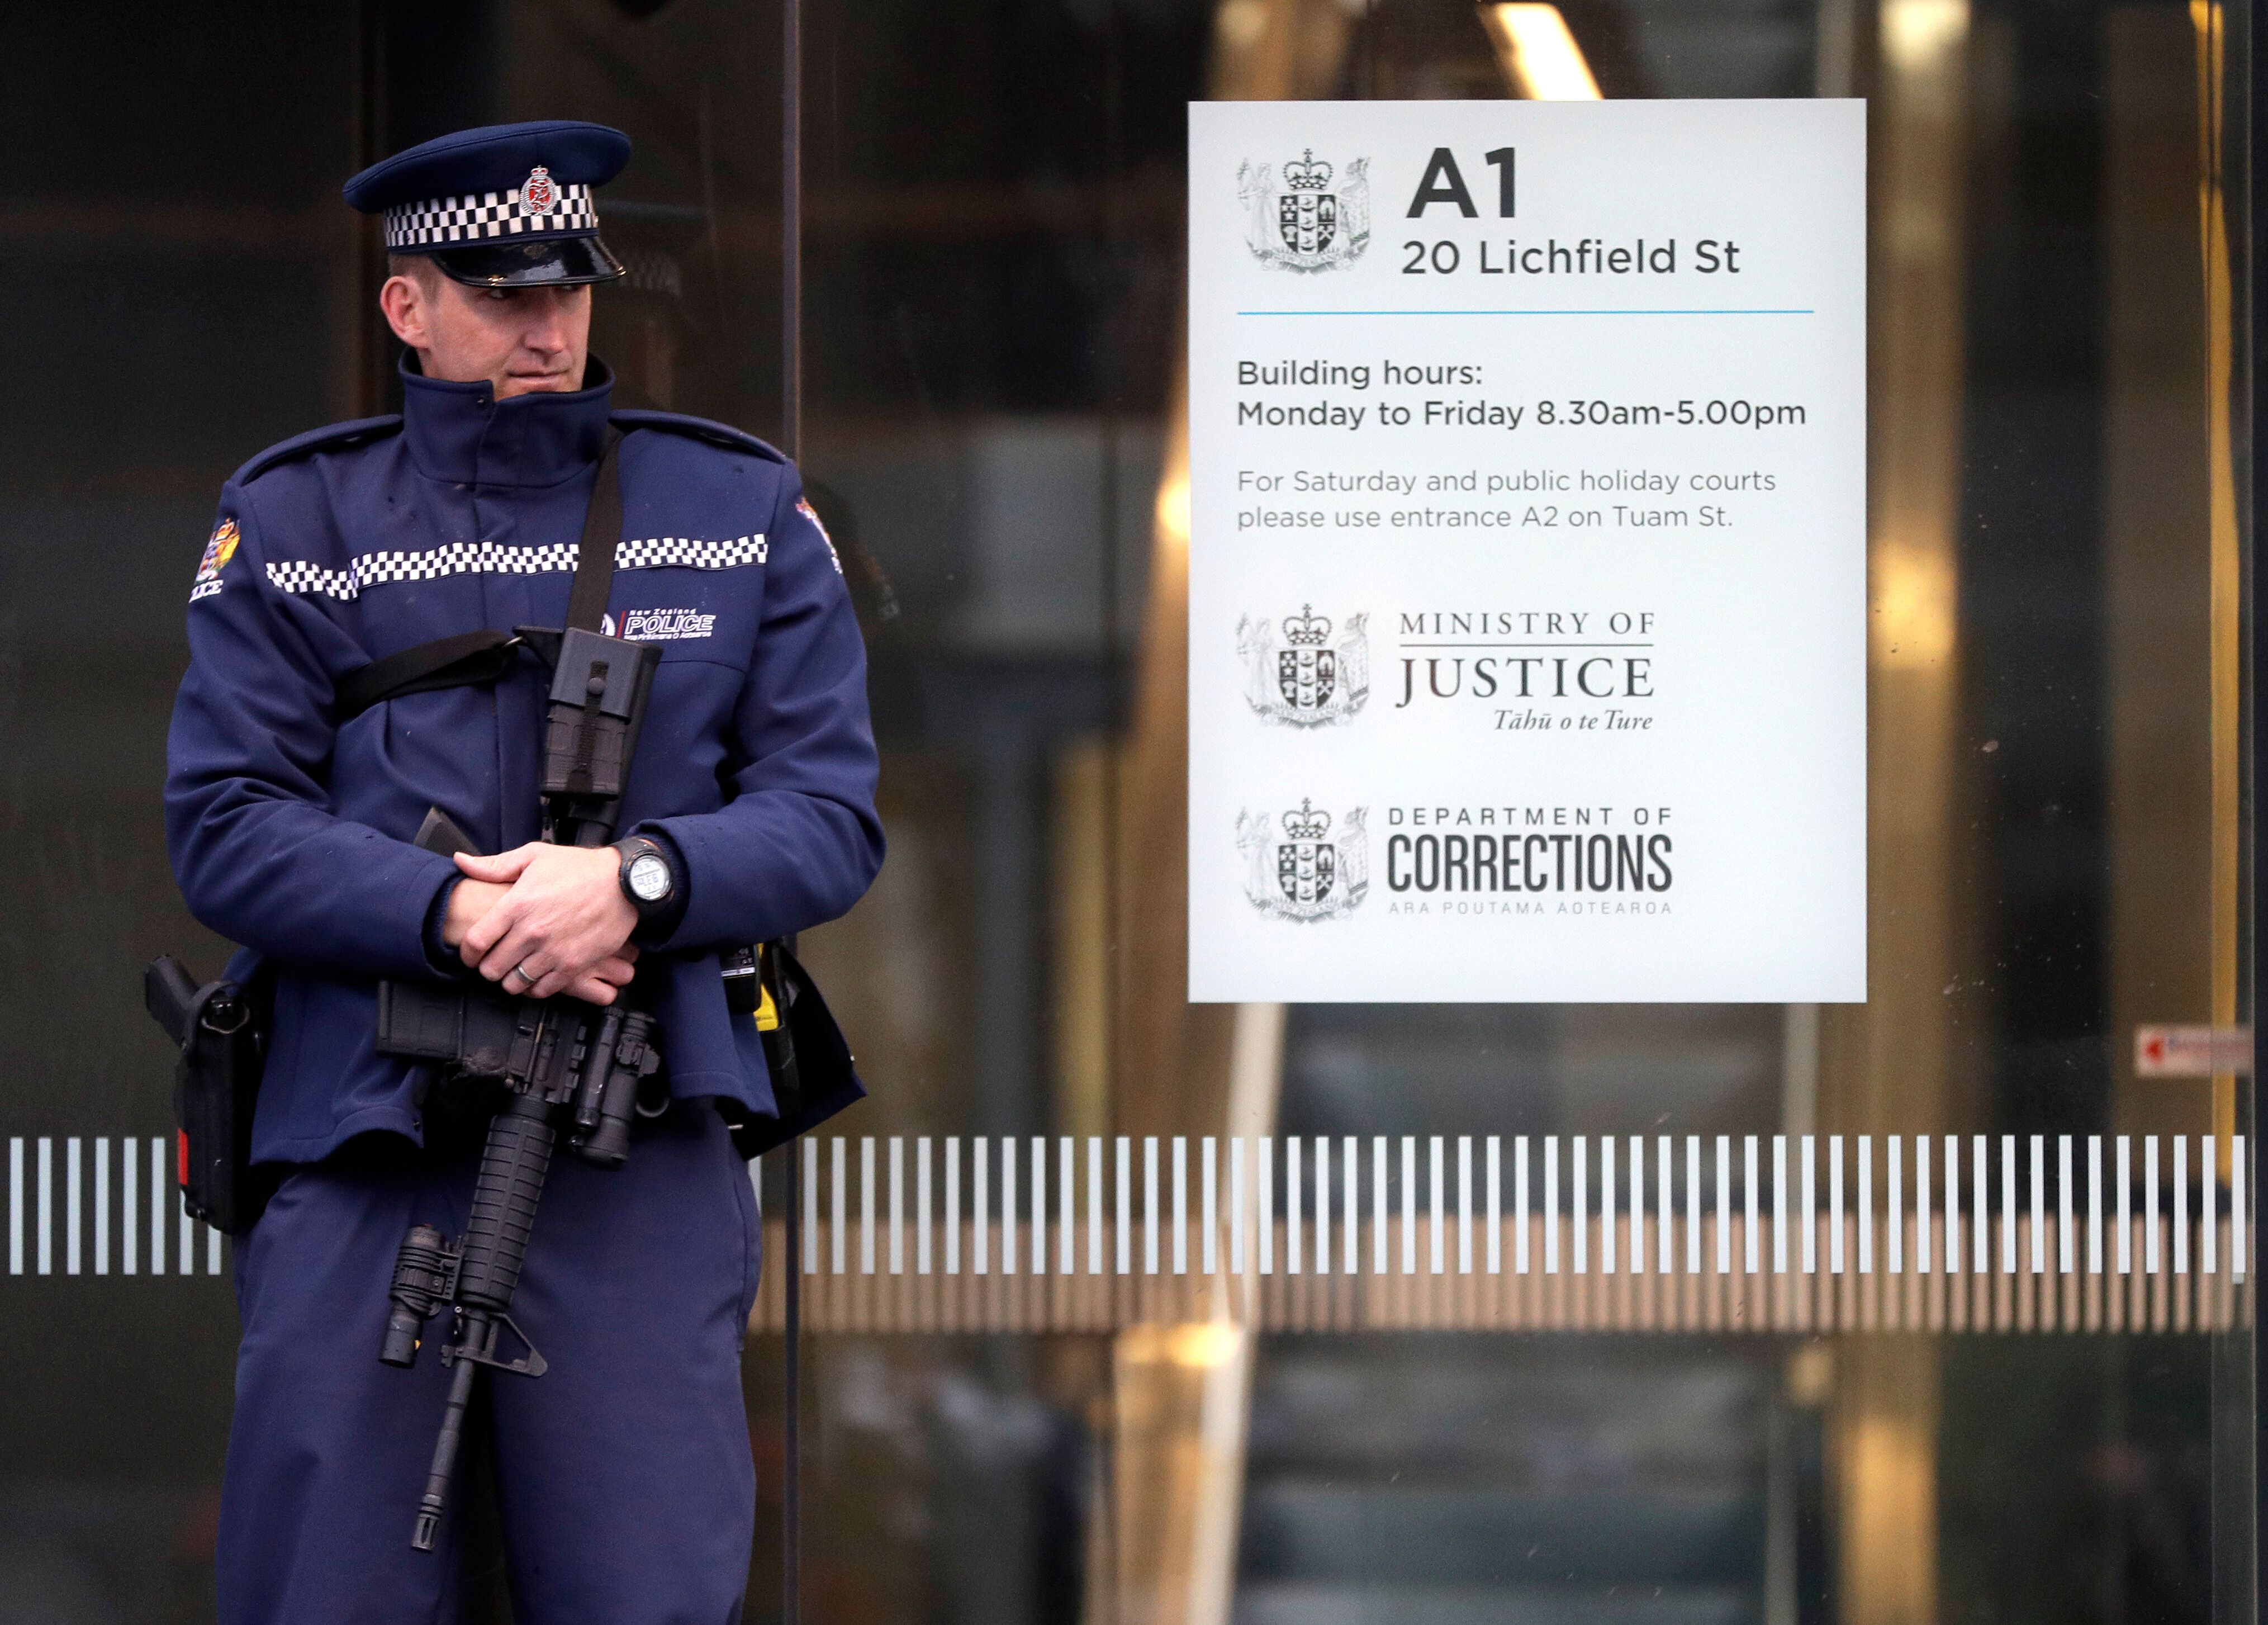 A armed police office stands guard outside the entrance to the High Court in Christchurch, New Zealand, Friday, April 5, 2019. A New Zealand judge has ordered that the man accused of killing 50 people at two New Zealand mosques, 28-year-old Brenton Harrison Tarrant, undergo two mental health tests to determine if he's fit to enter pleas in the case. (AP Photo/Mark Baker)